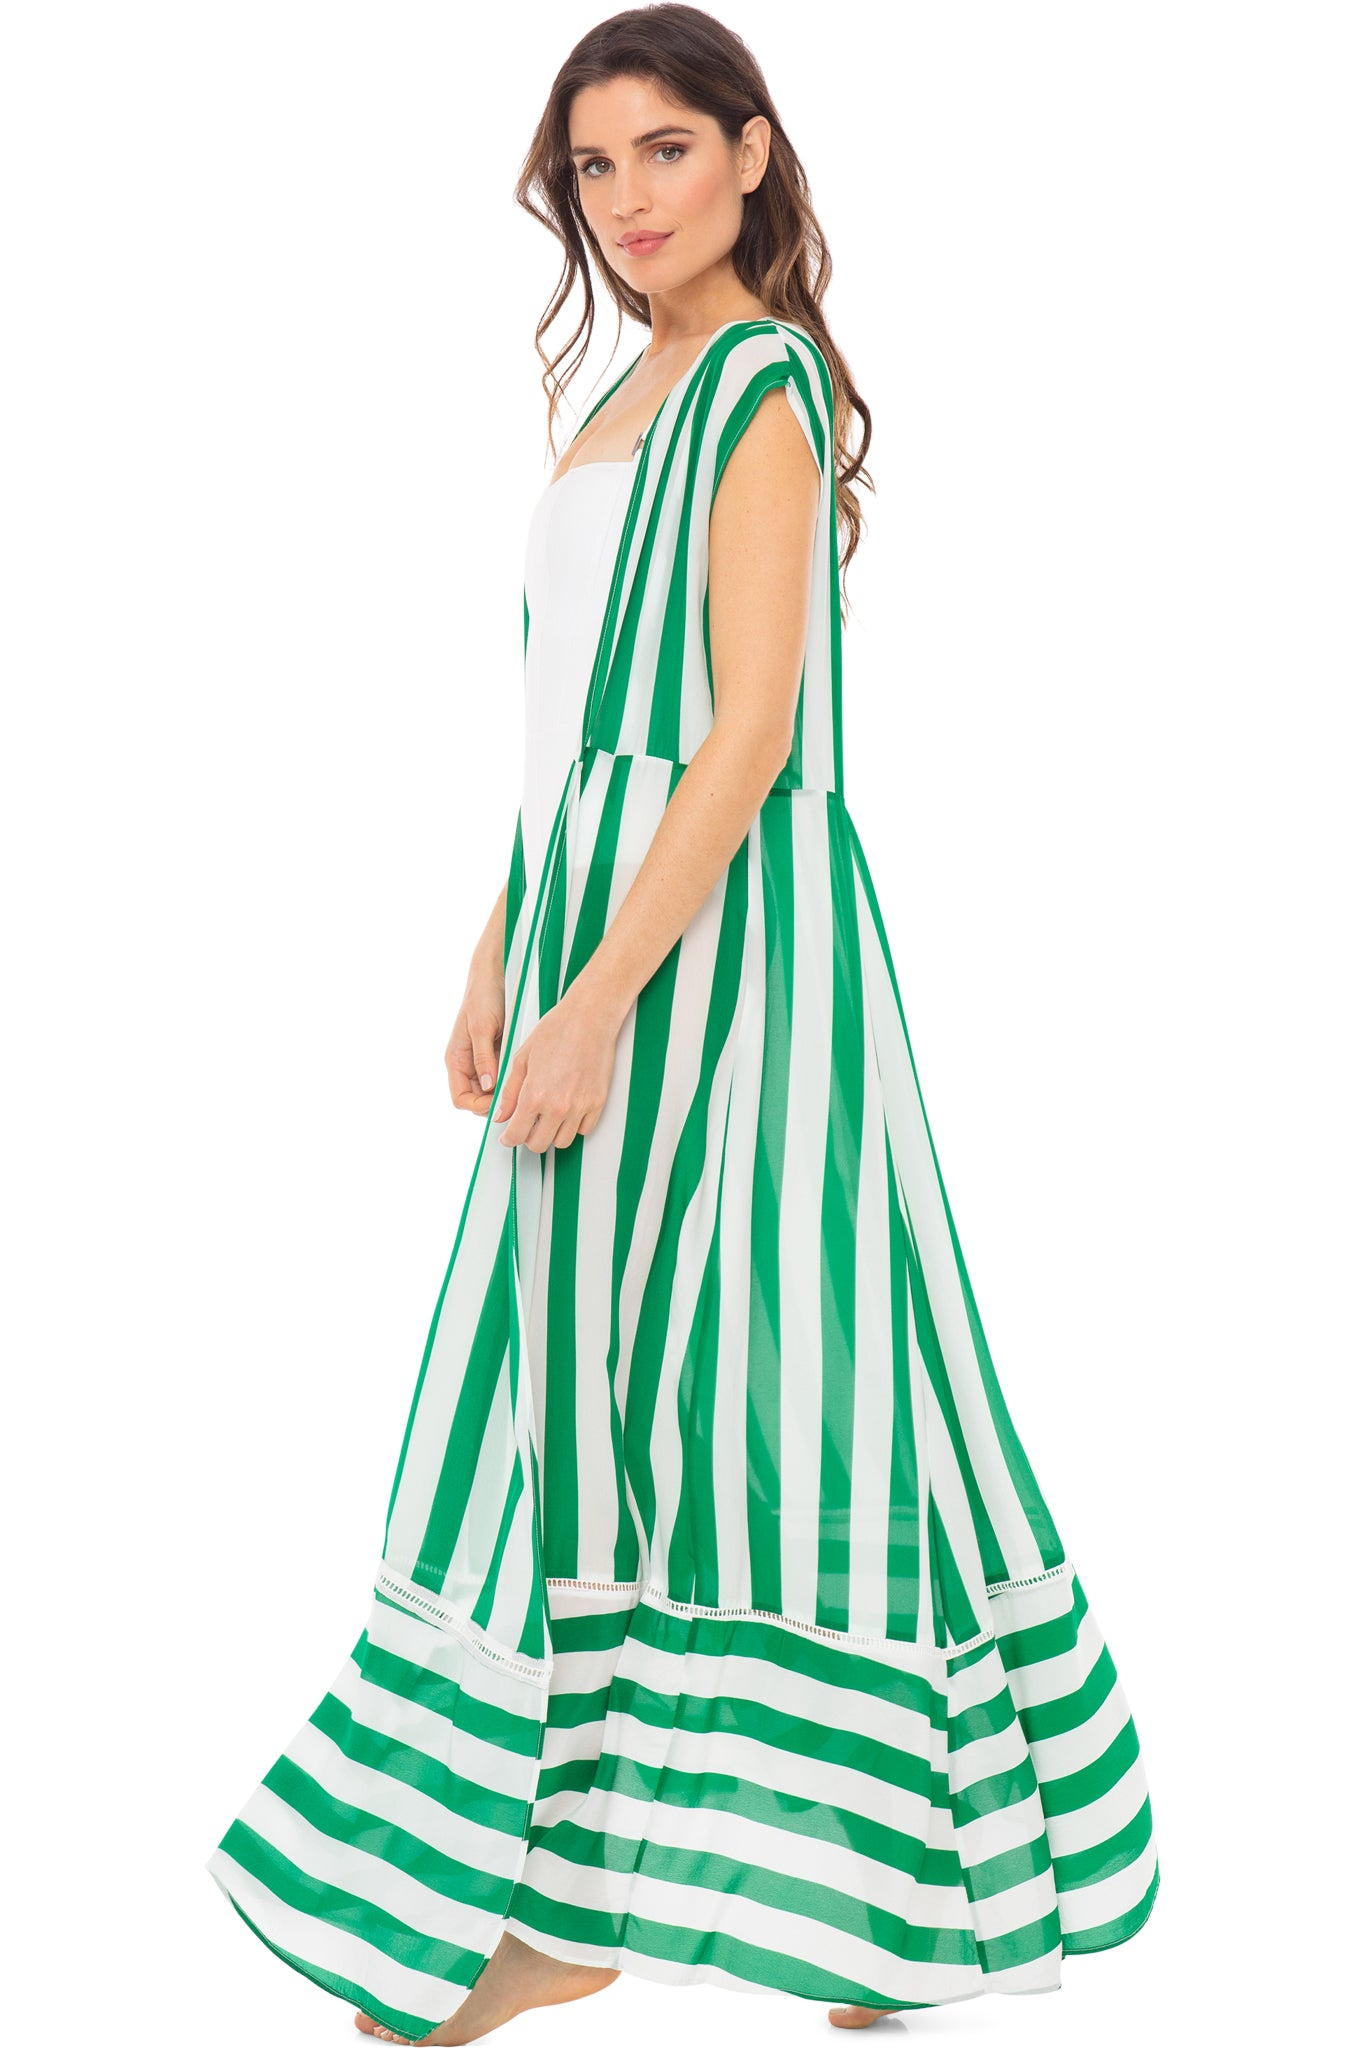 Audrey sleeveless maxi cover-up in green and white stripes - side shot